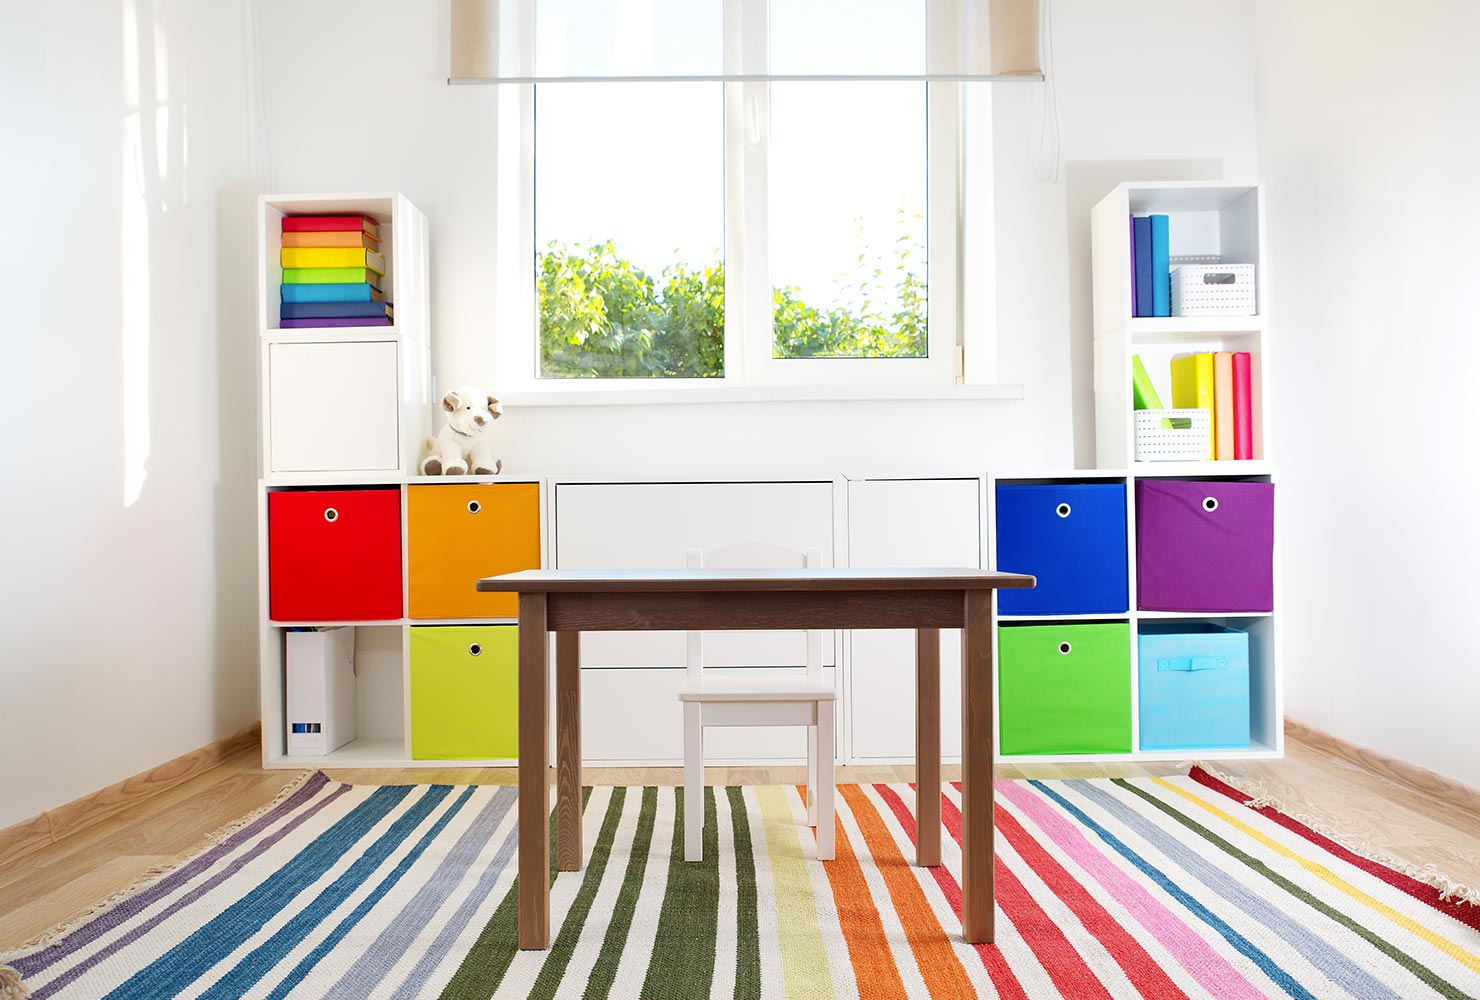 Rainbow color coded shelves.